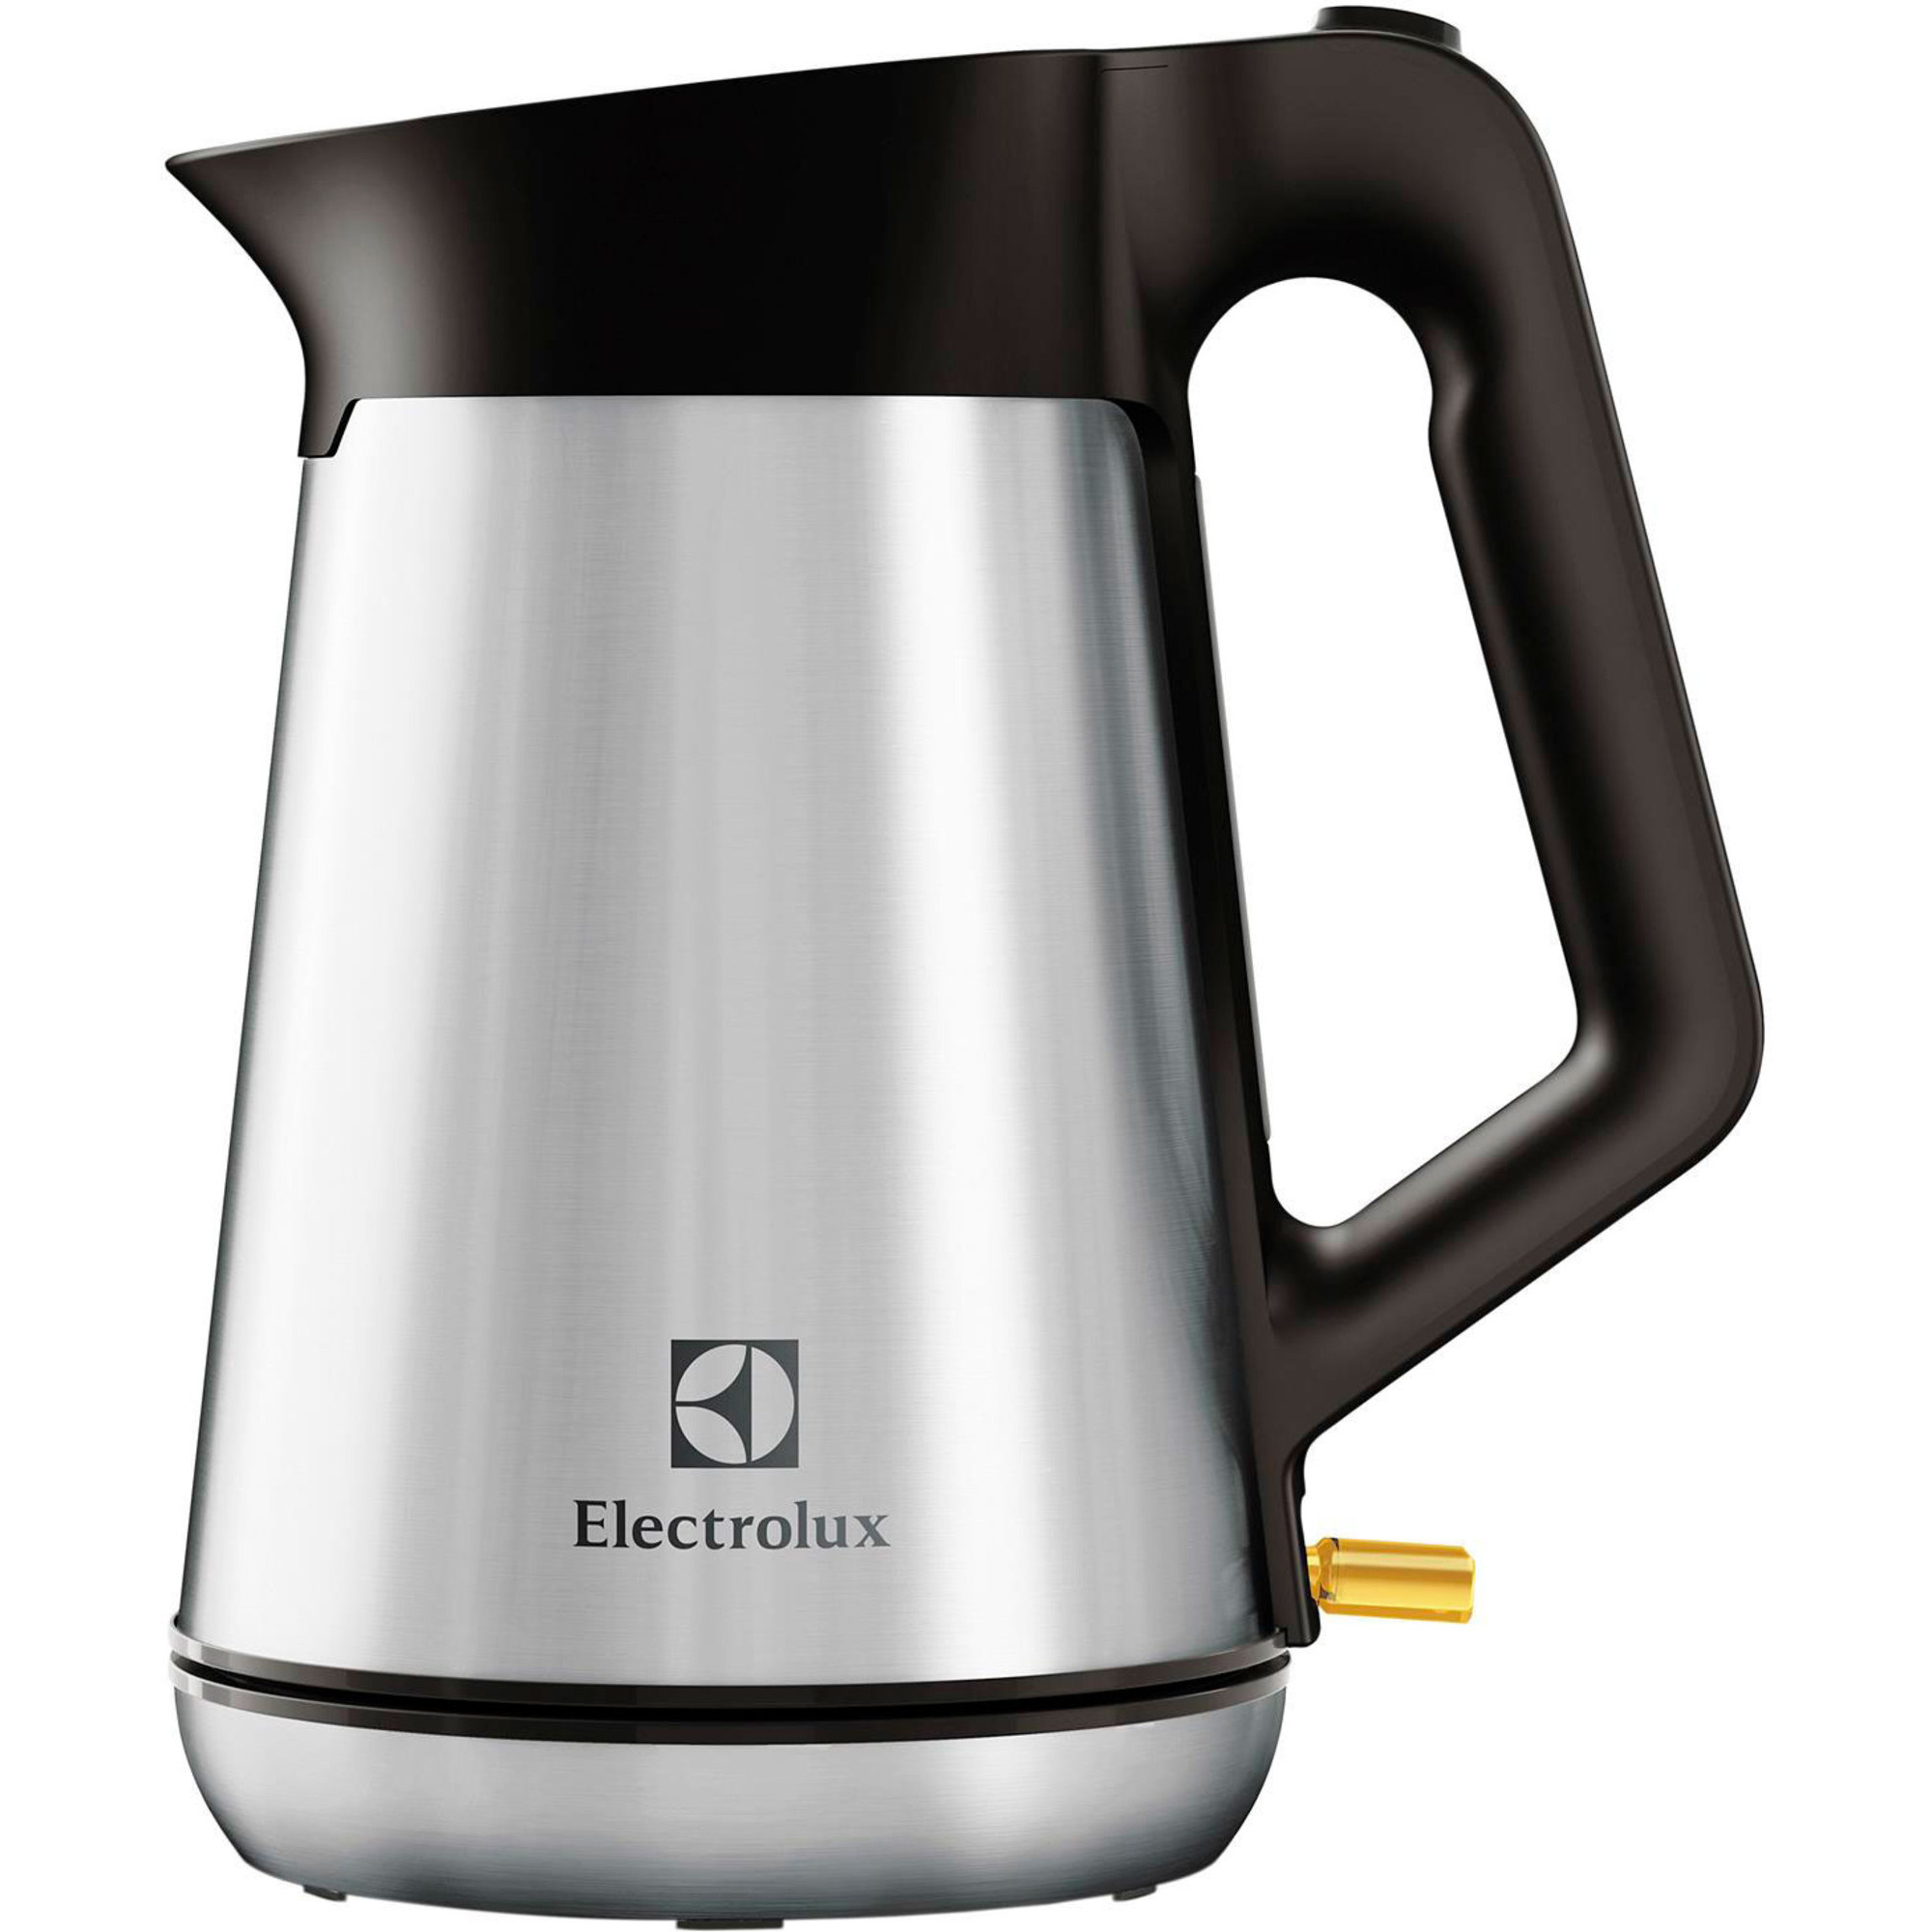 Electrolux Vattenkokare Creative collection EEWA5300 Rostfri